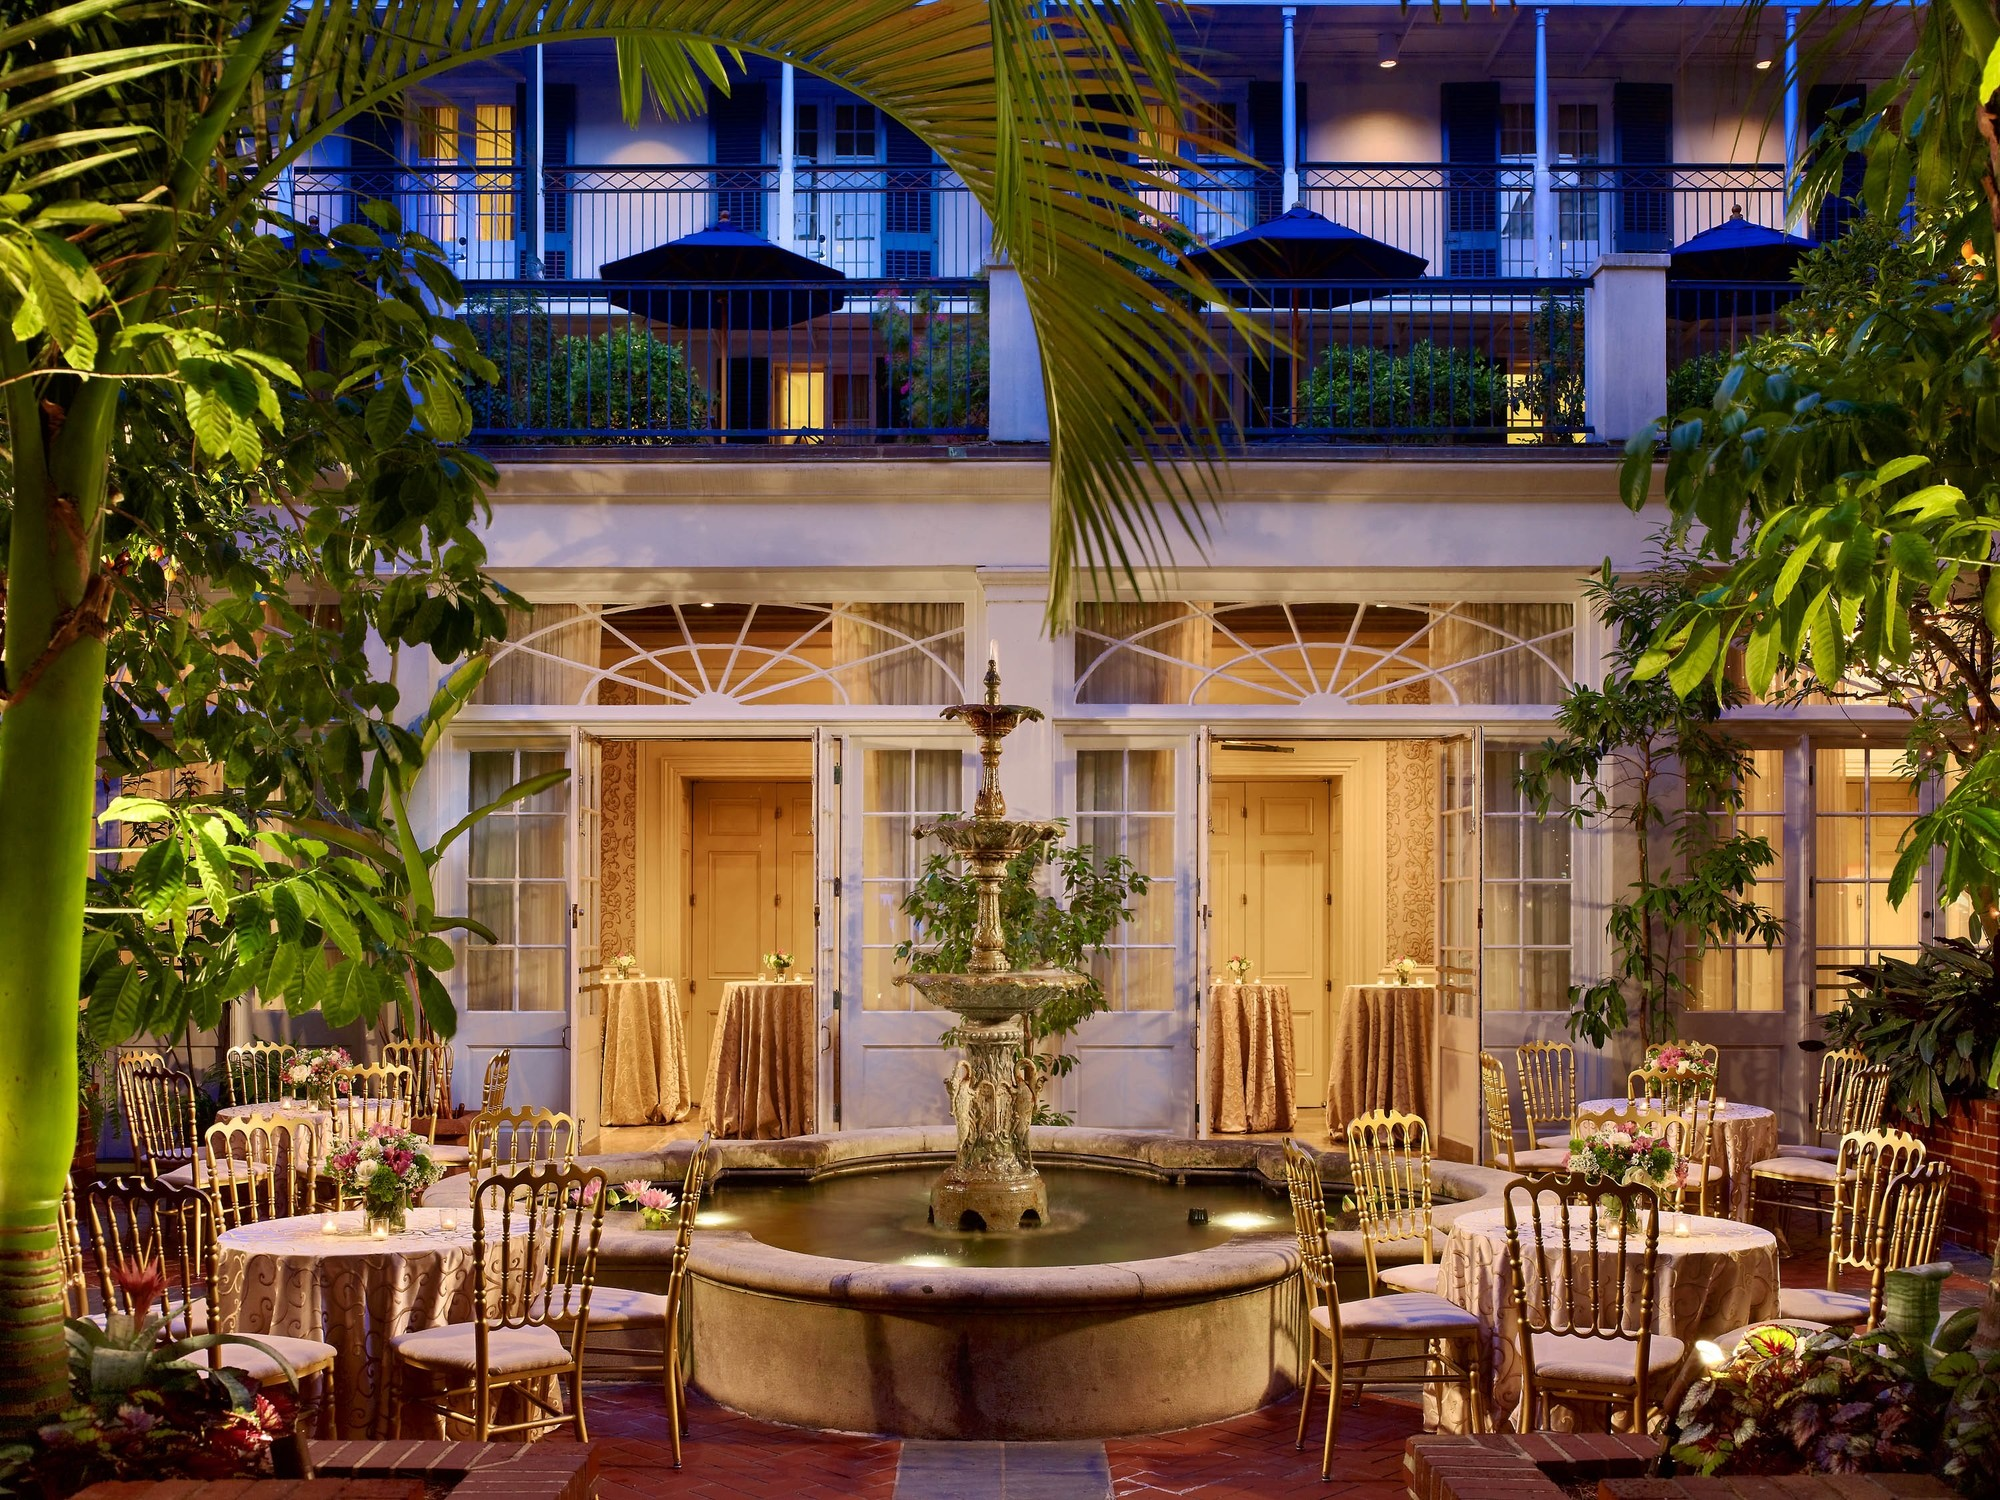 Royal Sonesta New Orleans Hotel courtyard set for a wedidng.